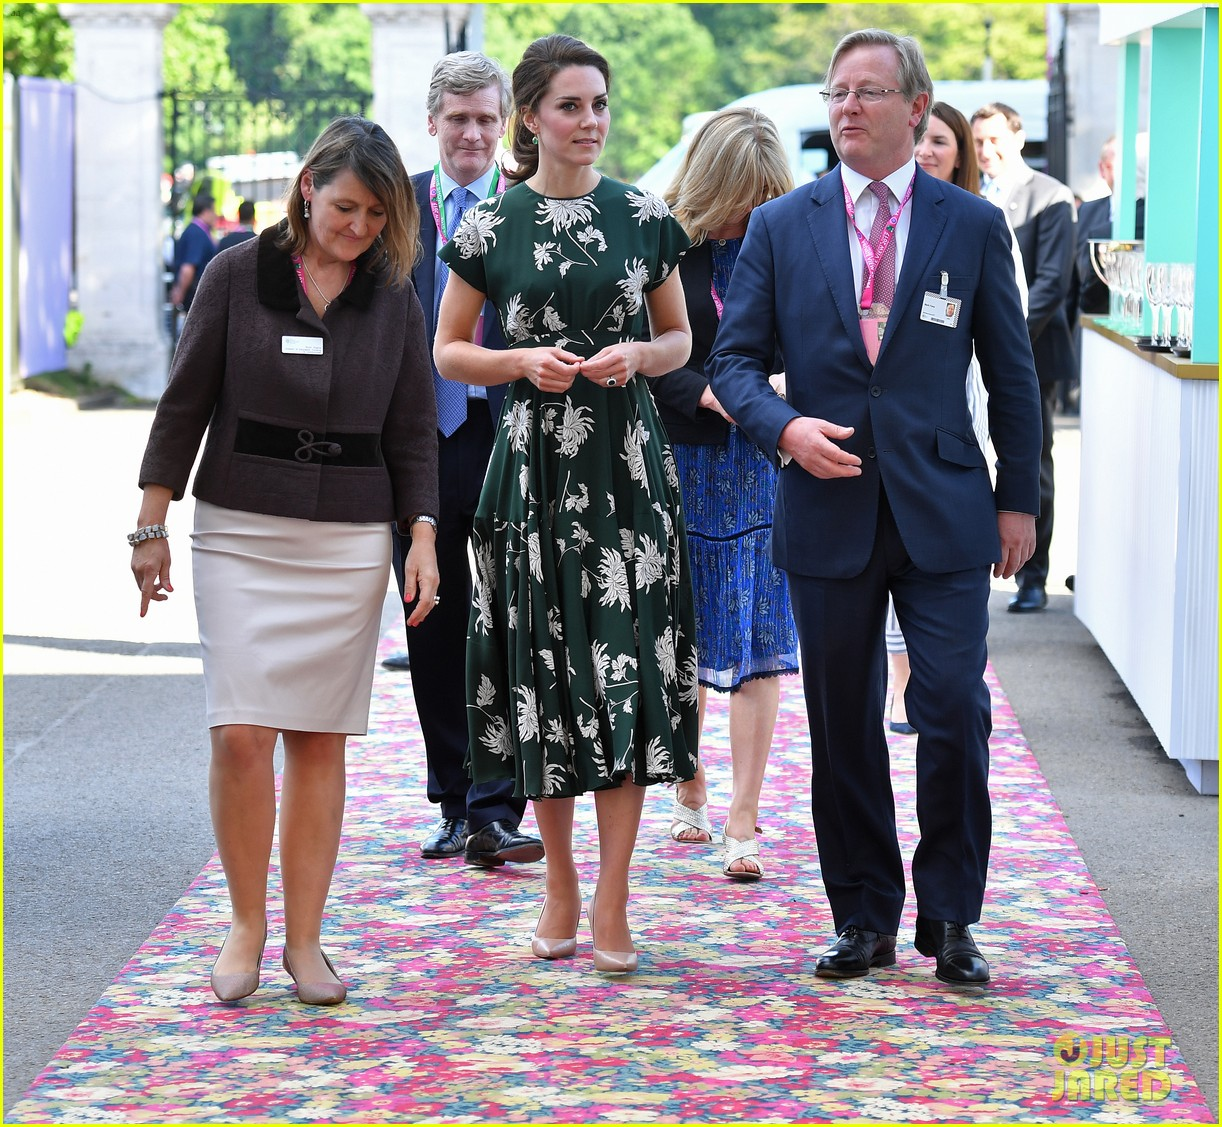 Pippa S Wedding.Kate Middleton Gets Back To Work After Pippa Middleton S Weekend